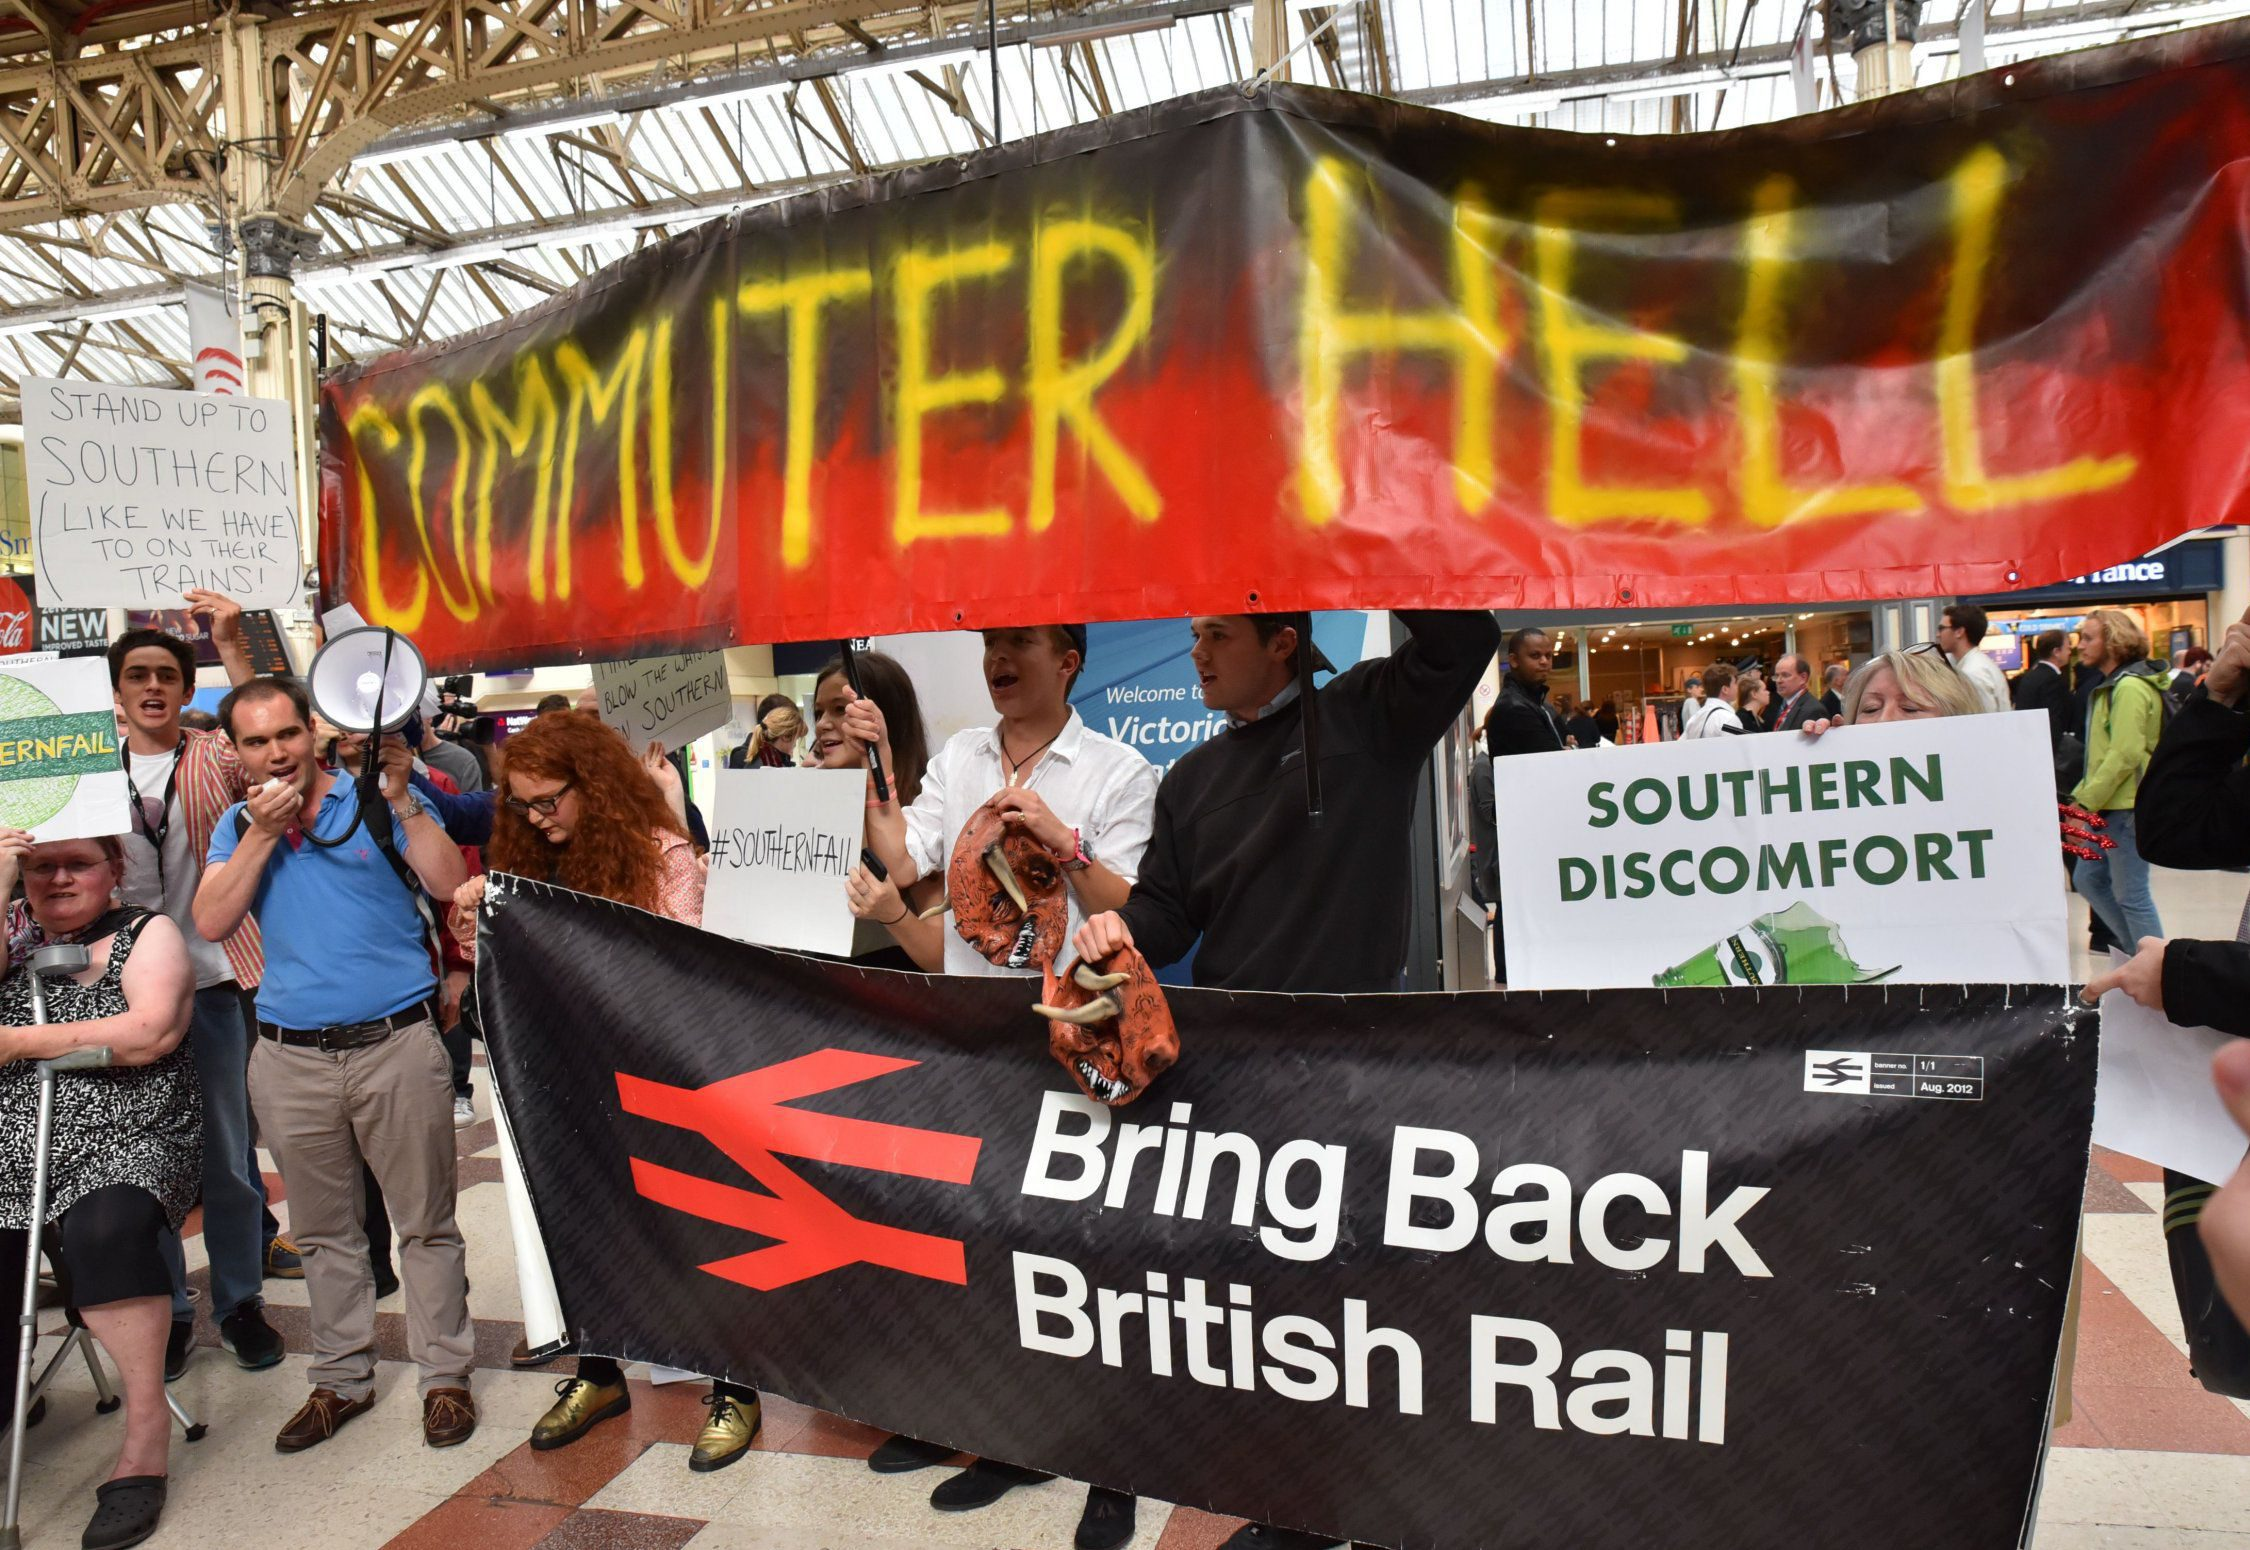 Mandatory Credit: Photo by Matthew Chattle/REX/Shutterstock (5754963c) Commuters protest in Victoria Station against the poor service and cancellations on Southern Rail. Southern Rail protest in Victoria Station, London, UK - 11 Jul 2016